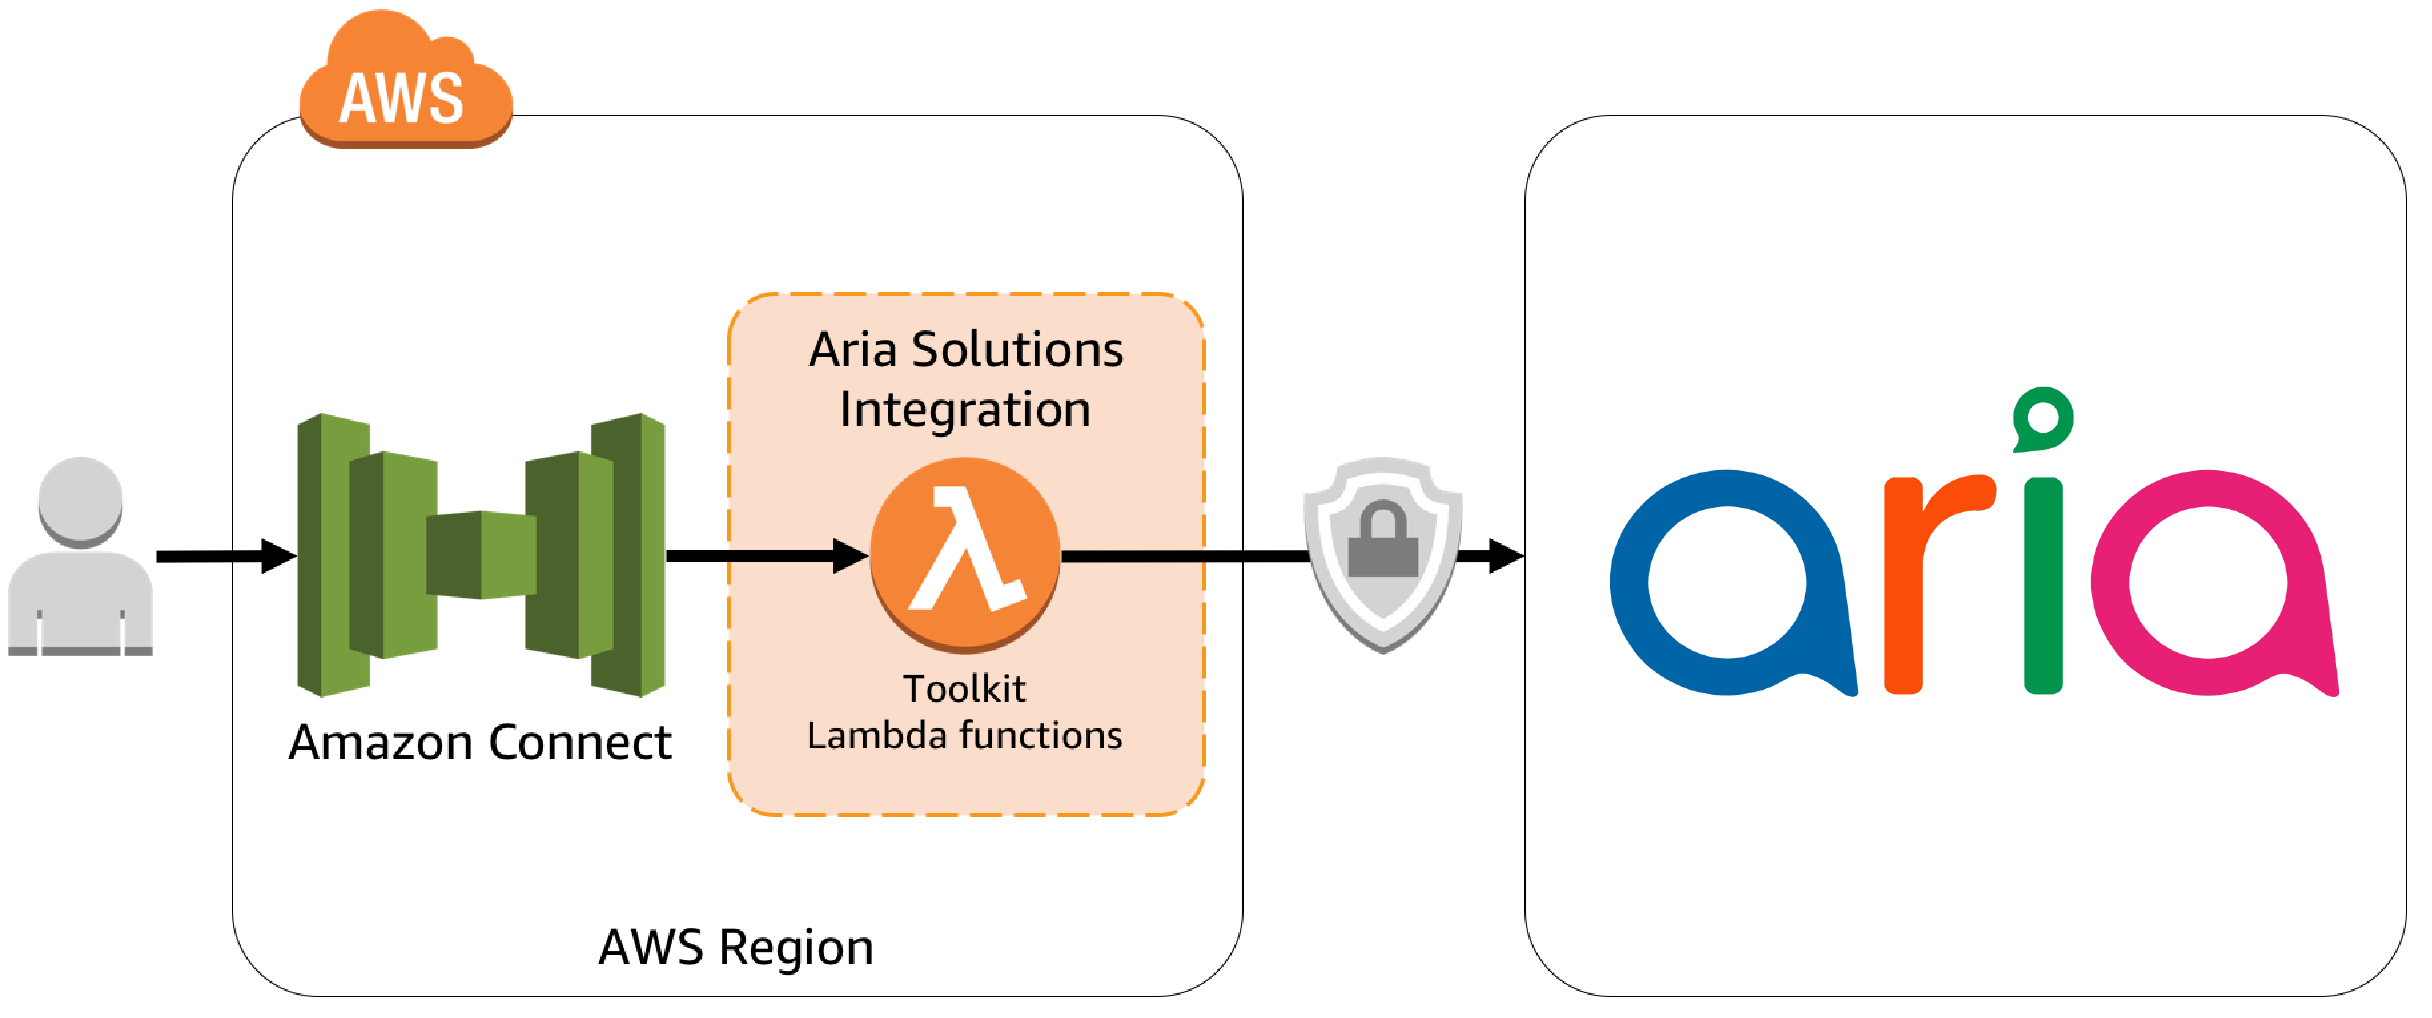 connect-integration-aria-architecture